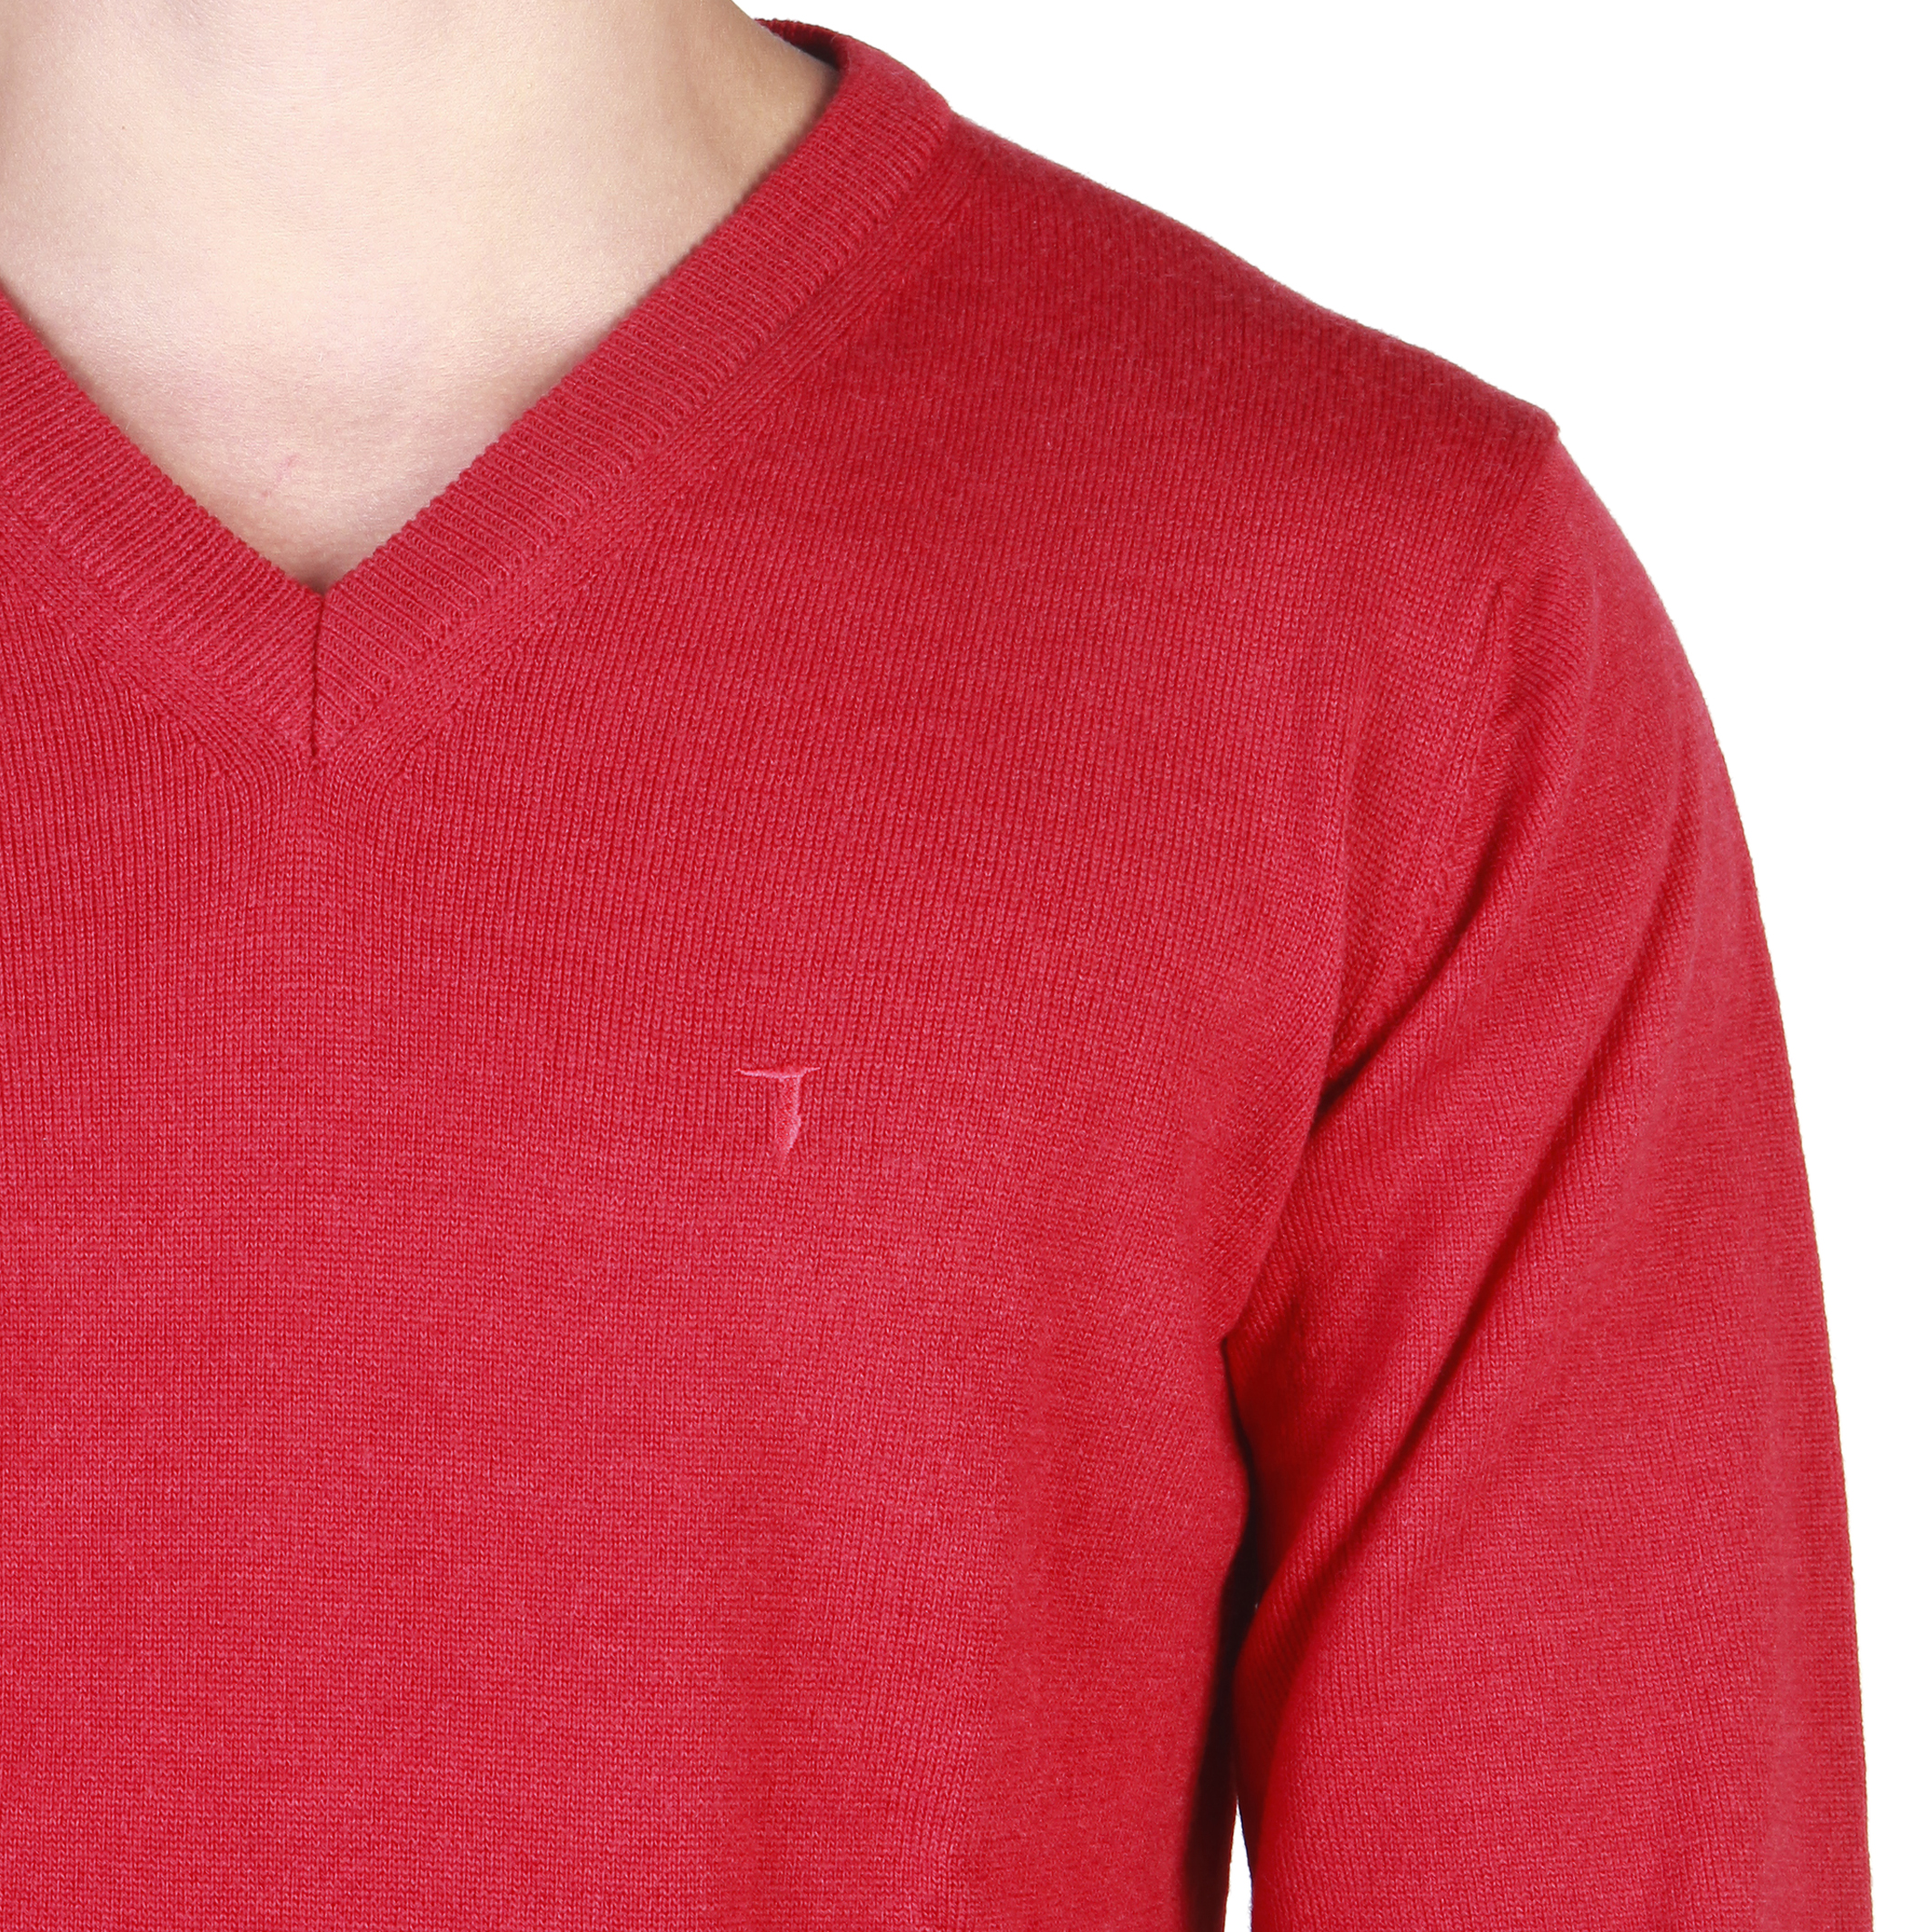 Pulls  Trussardi 32M32INT red